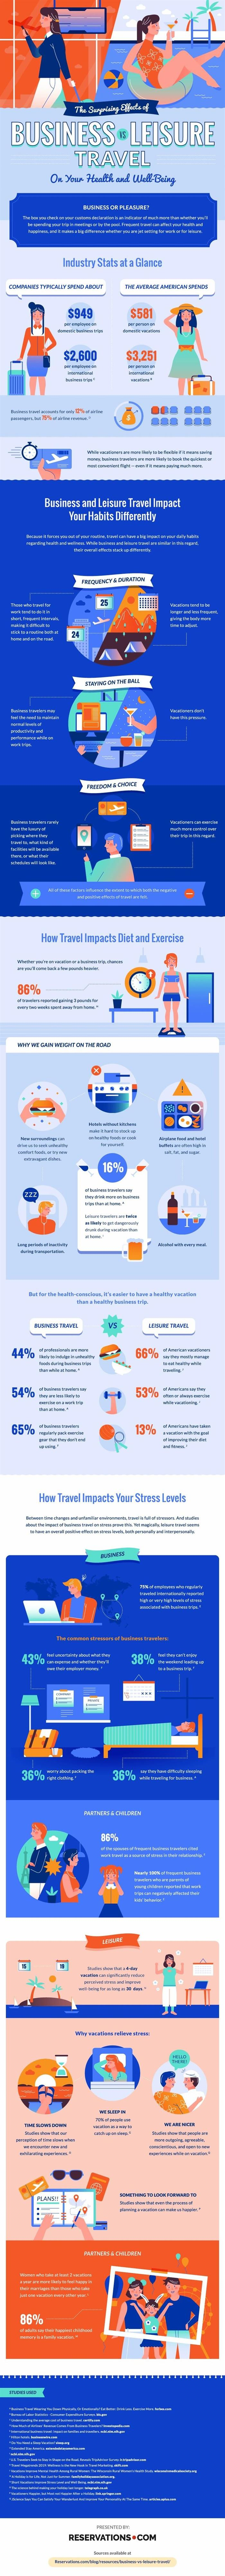 Career Management - The Surprising Effects of Business vs Leisure Travel on Your Health and Wellbeing [Infographic] : MarketingProfs Article 1